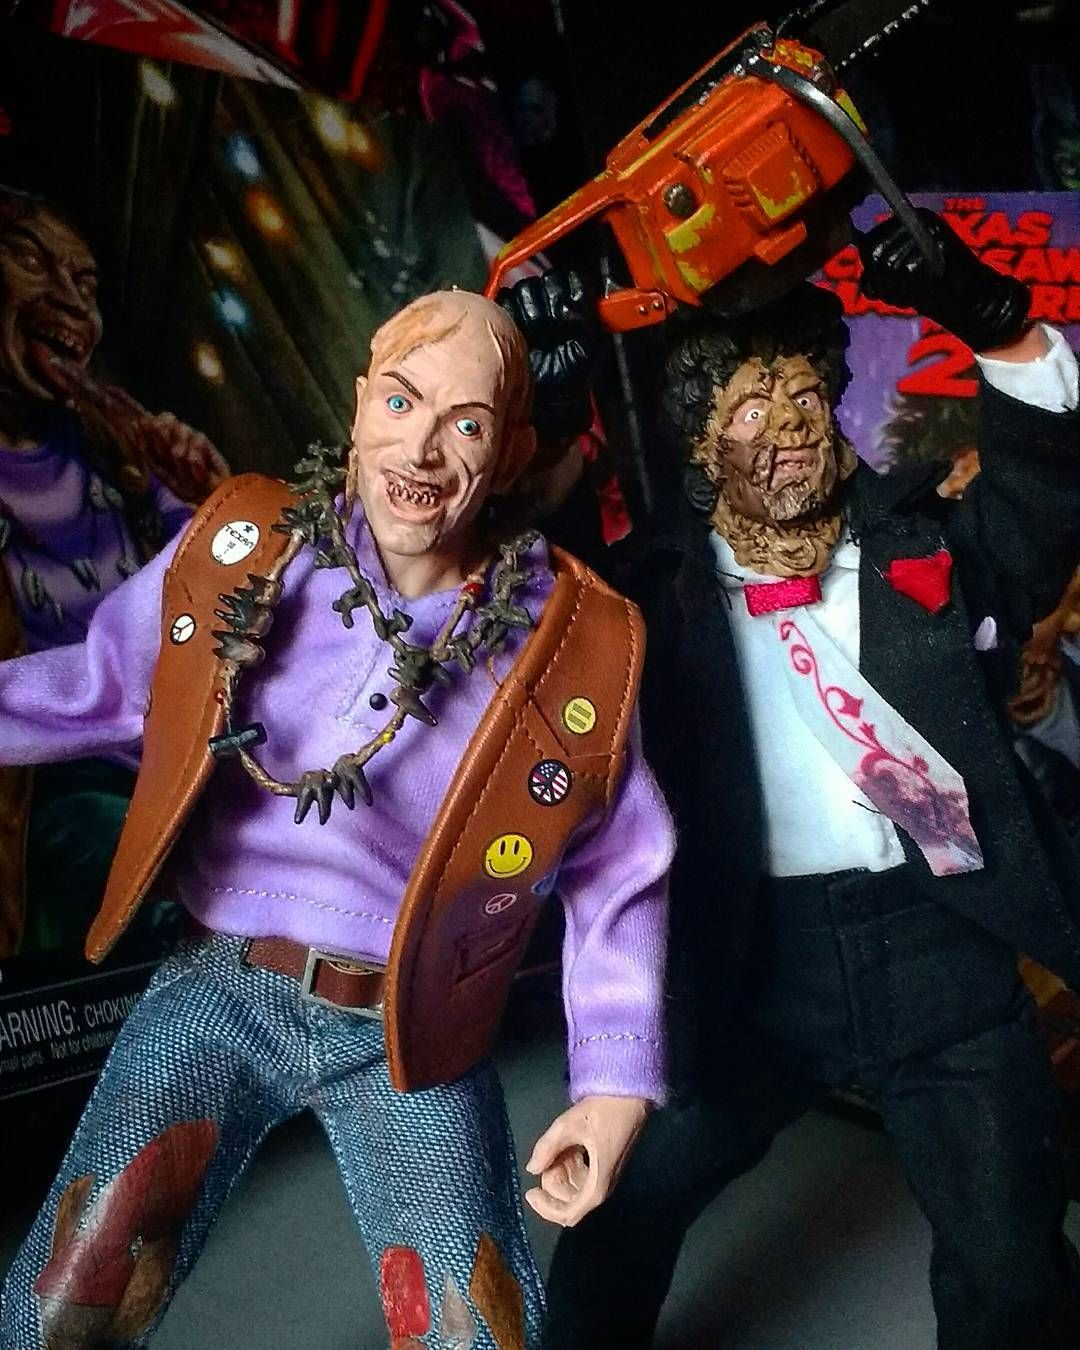 Chop Top And Bubba Together At Last! Love These NECA